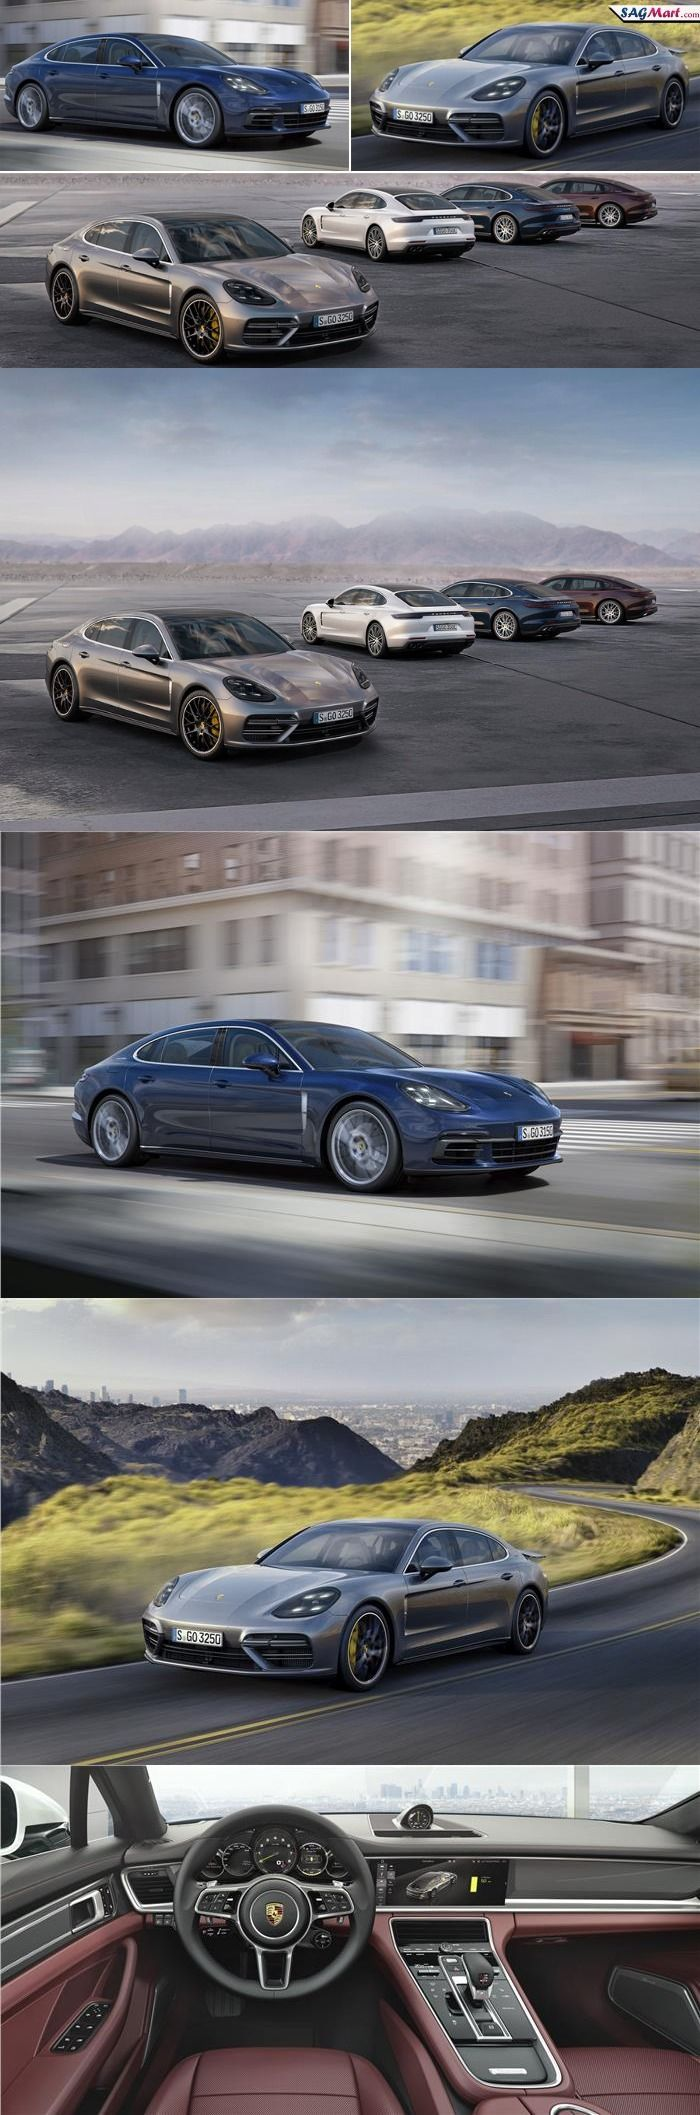 Nice Porsche 2017 - 2017 Porsche Panamera Lineup Added Six New Models...  Luxury Cars Check more at http://carsboard.pro/2017/2017/08/13/porsche-2017-2017-porsche-panamera-lineup-added-six-new-models-luxury-cars/